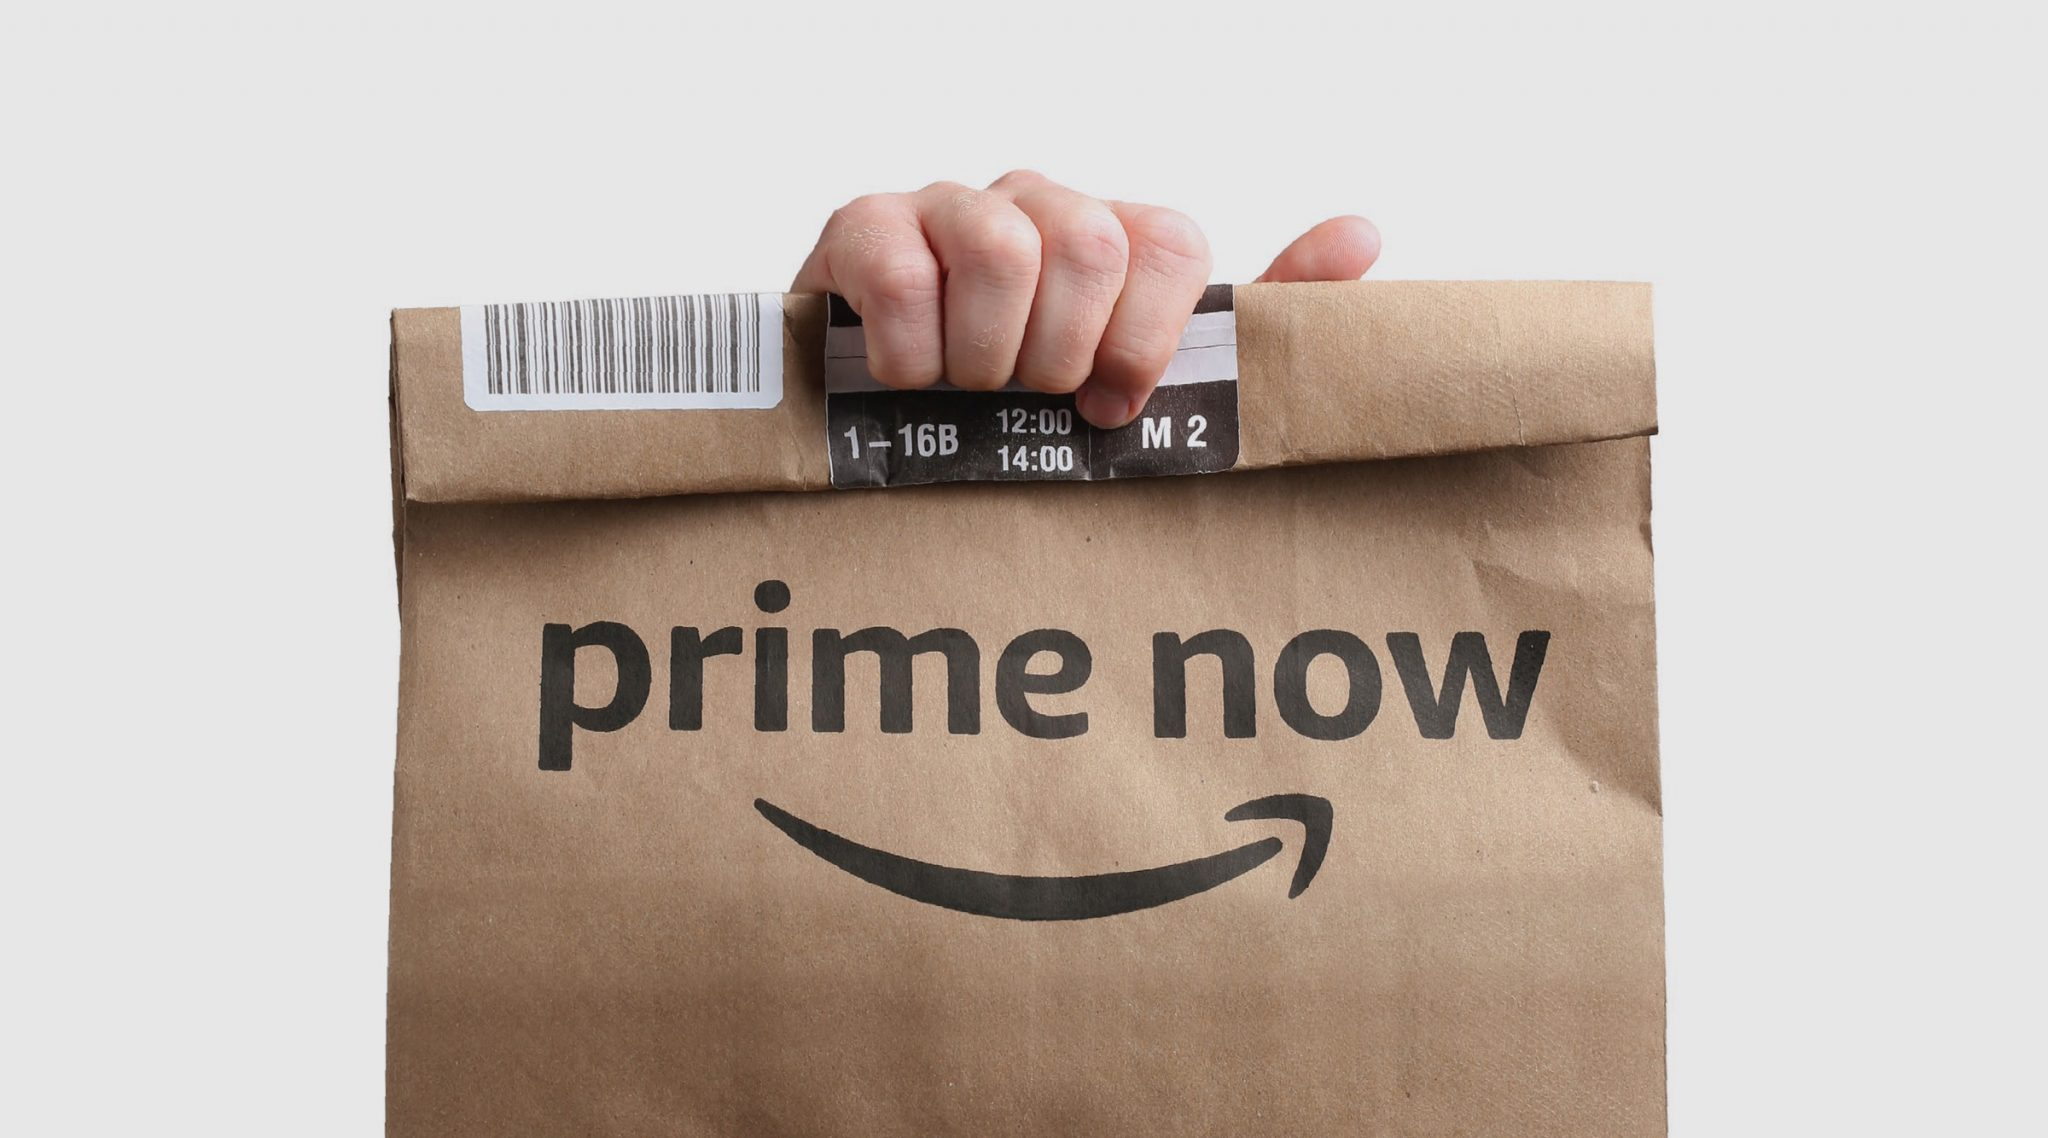 Launching Amazon's 2-Hour Delivery Service in Music City